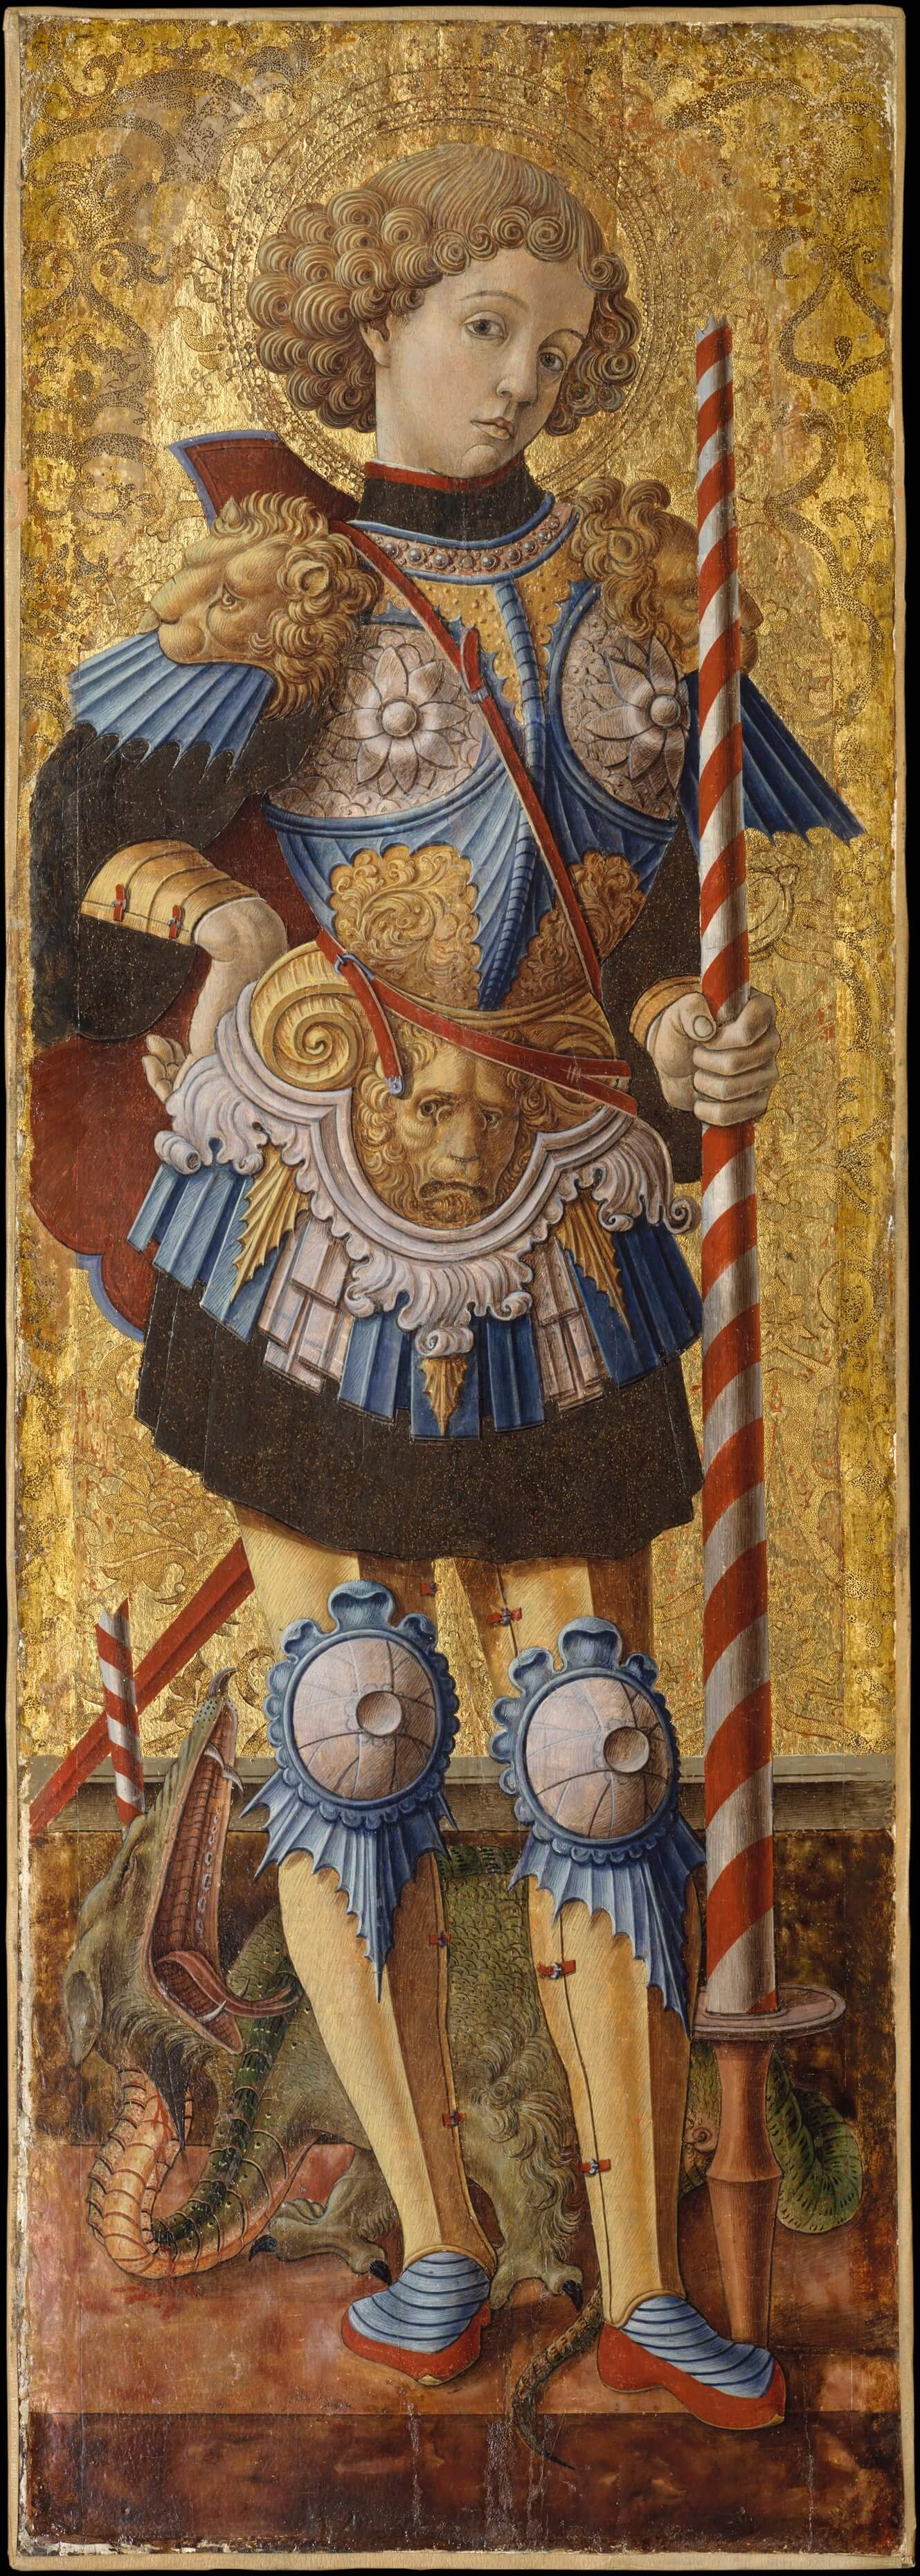 Saint George by Carlo Crivelli knight